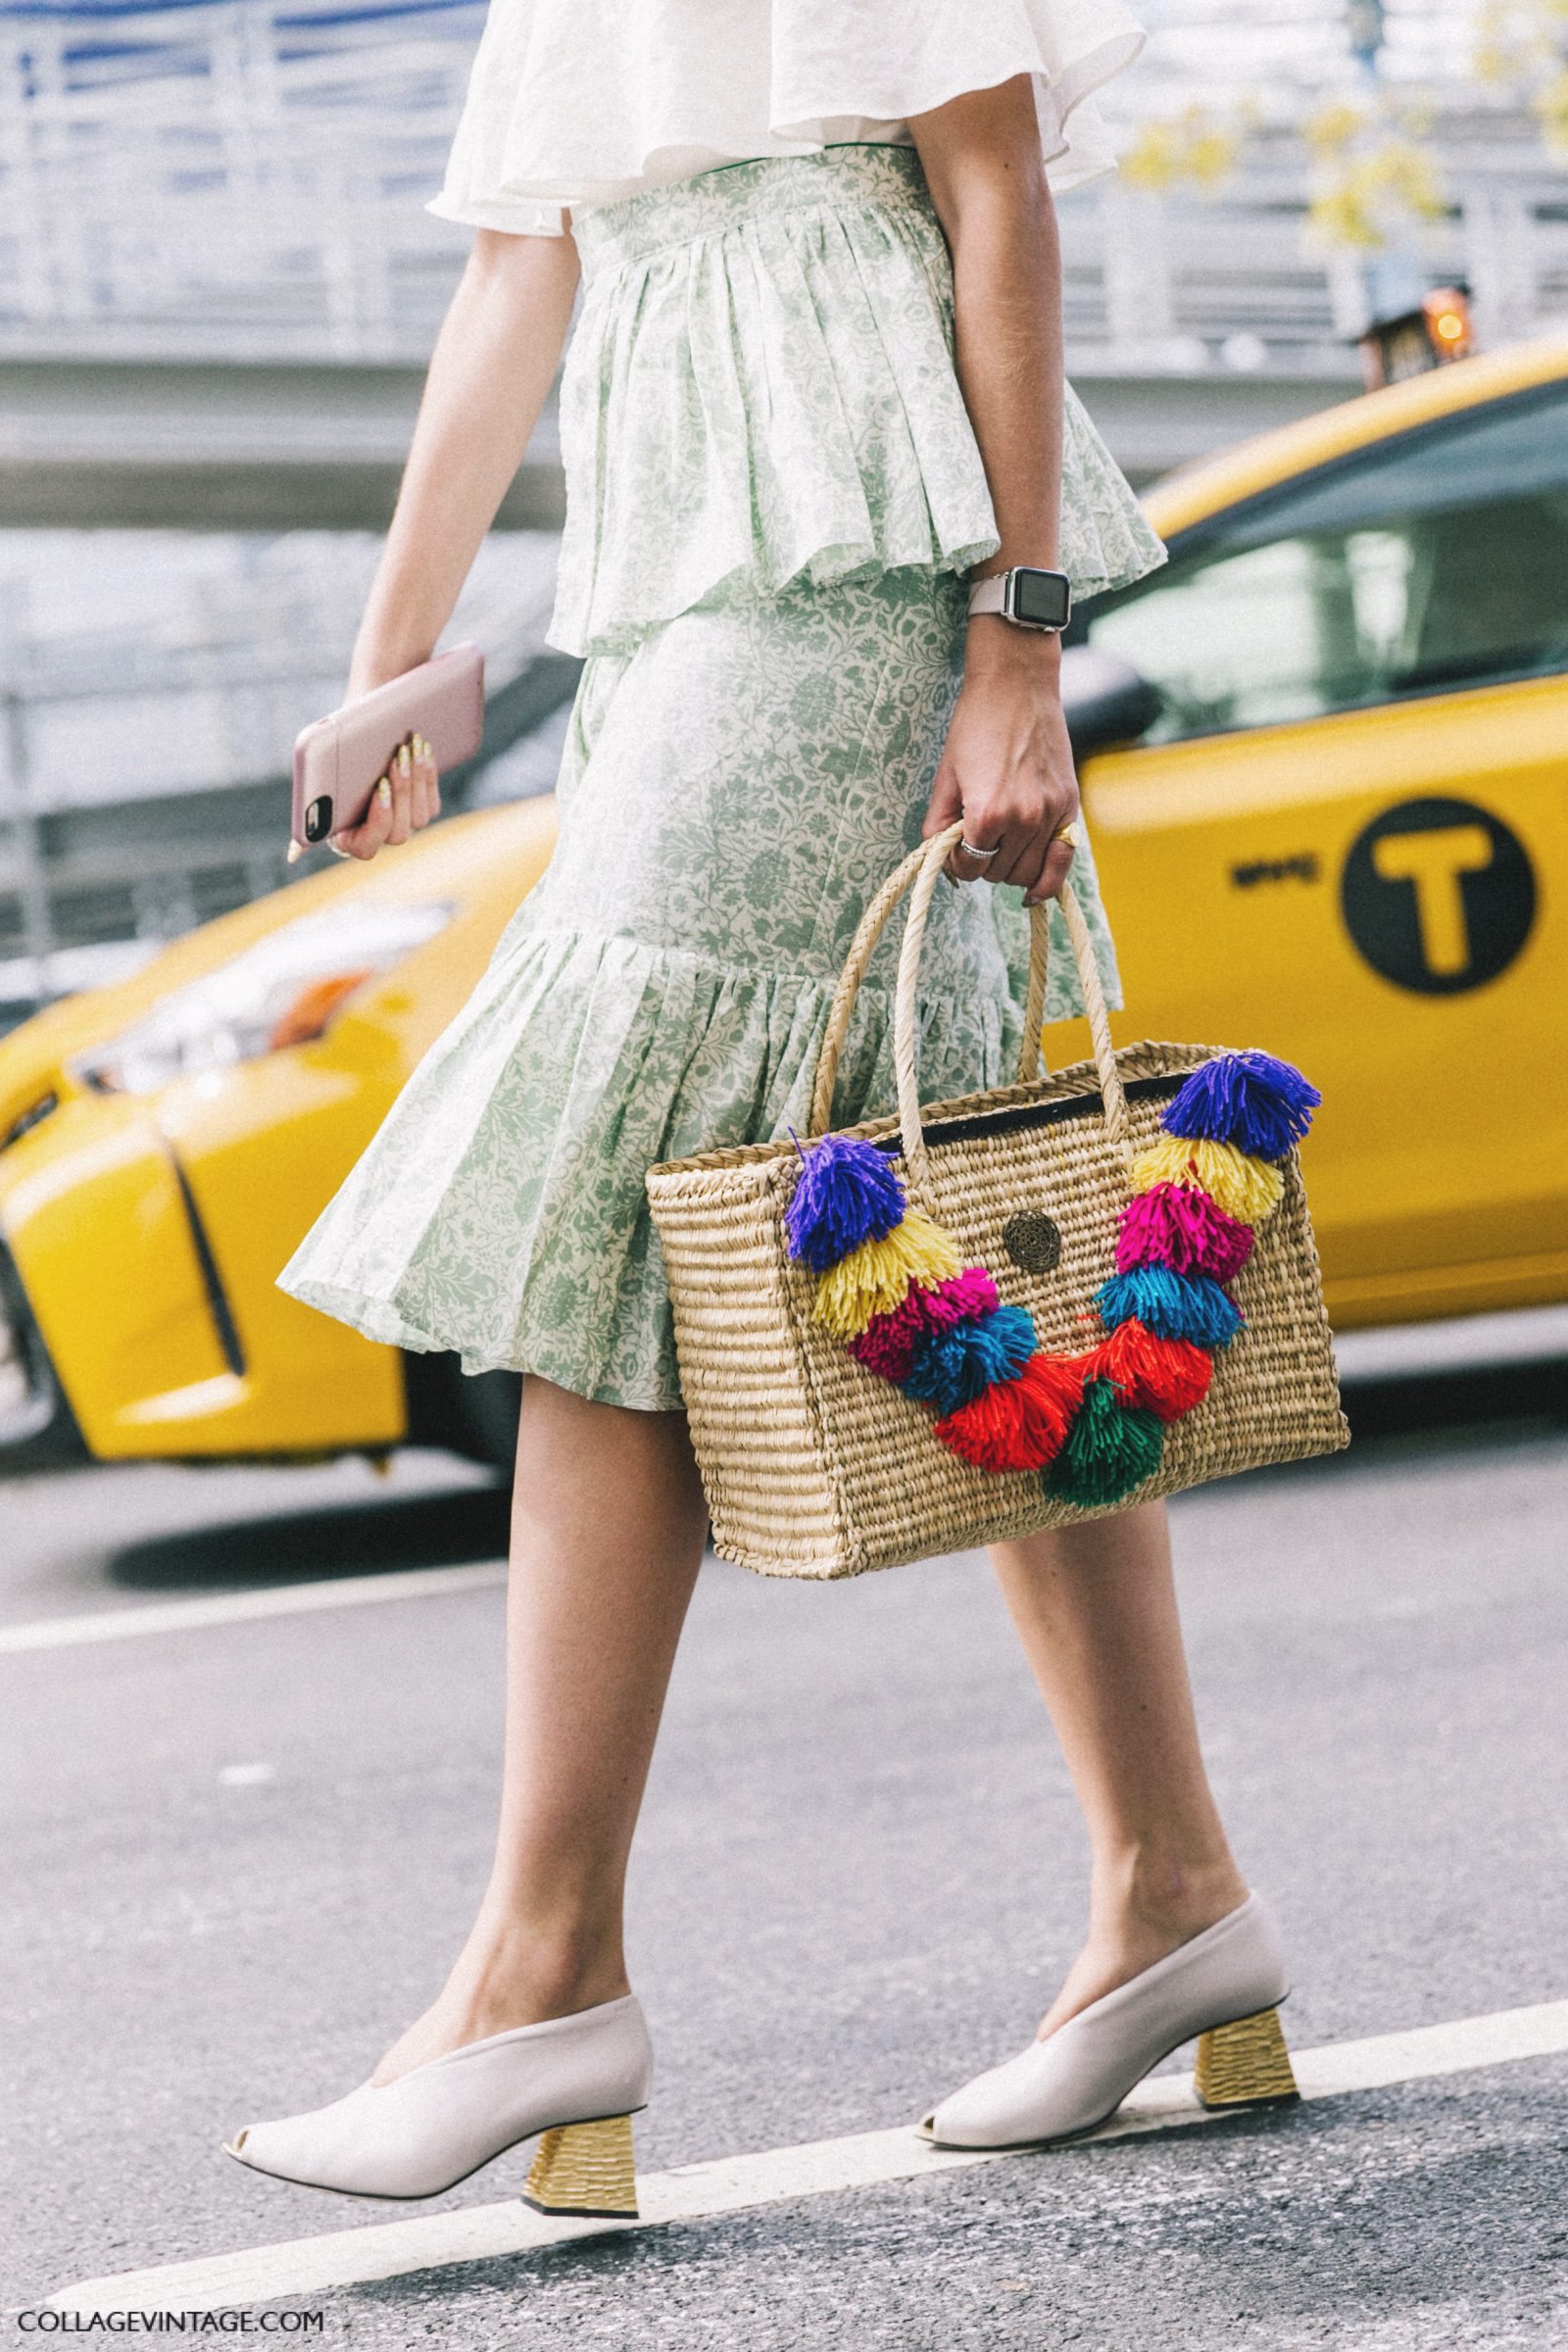 nyfw-new_york_fashion_week_ss17-street_style-outfits-collage_vintage-midi_skirt-basket